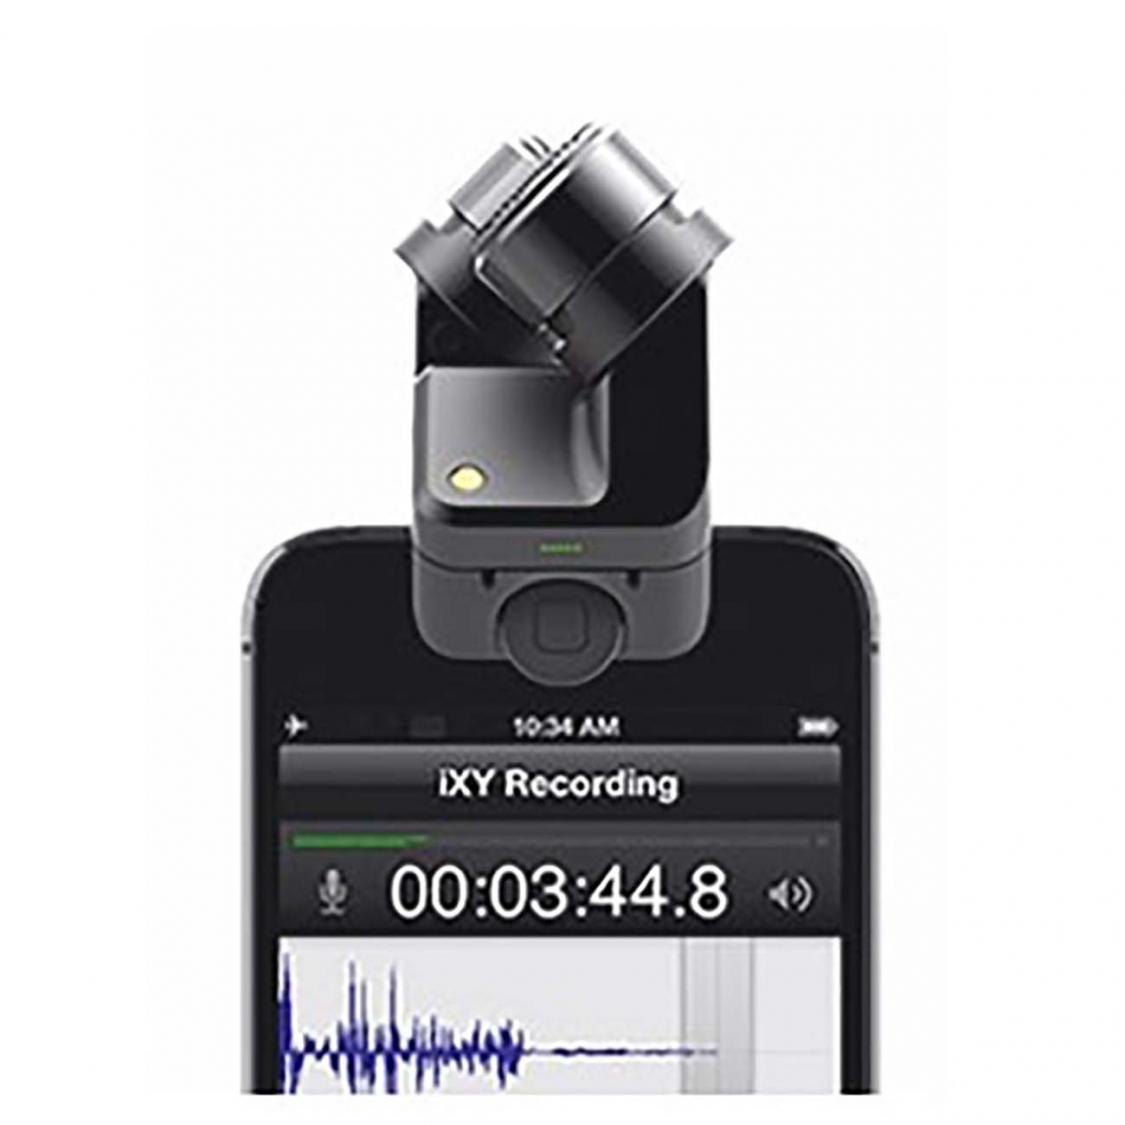 Rode iXY-L Stereo Microphone for iPhone/iPad